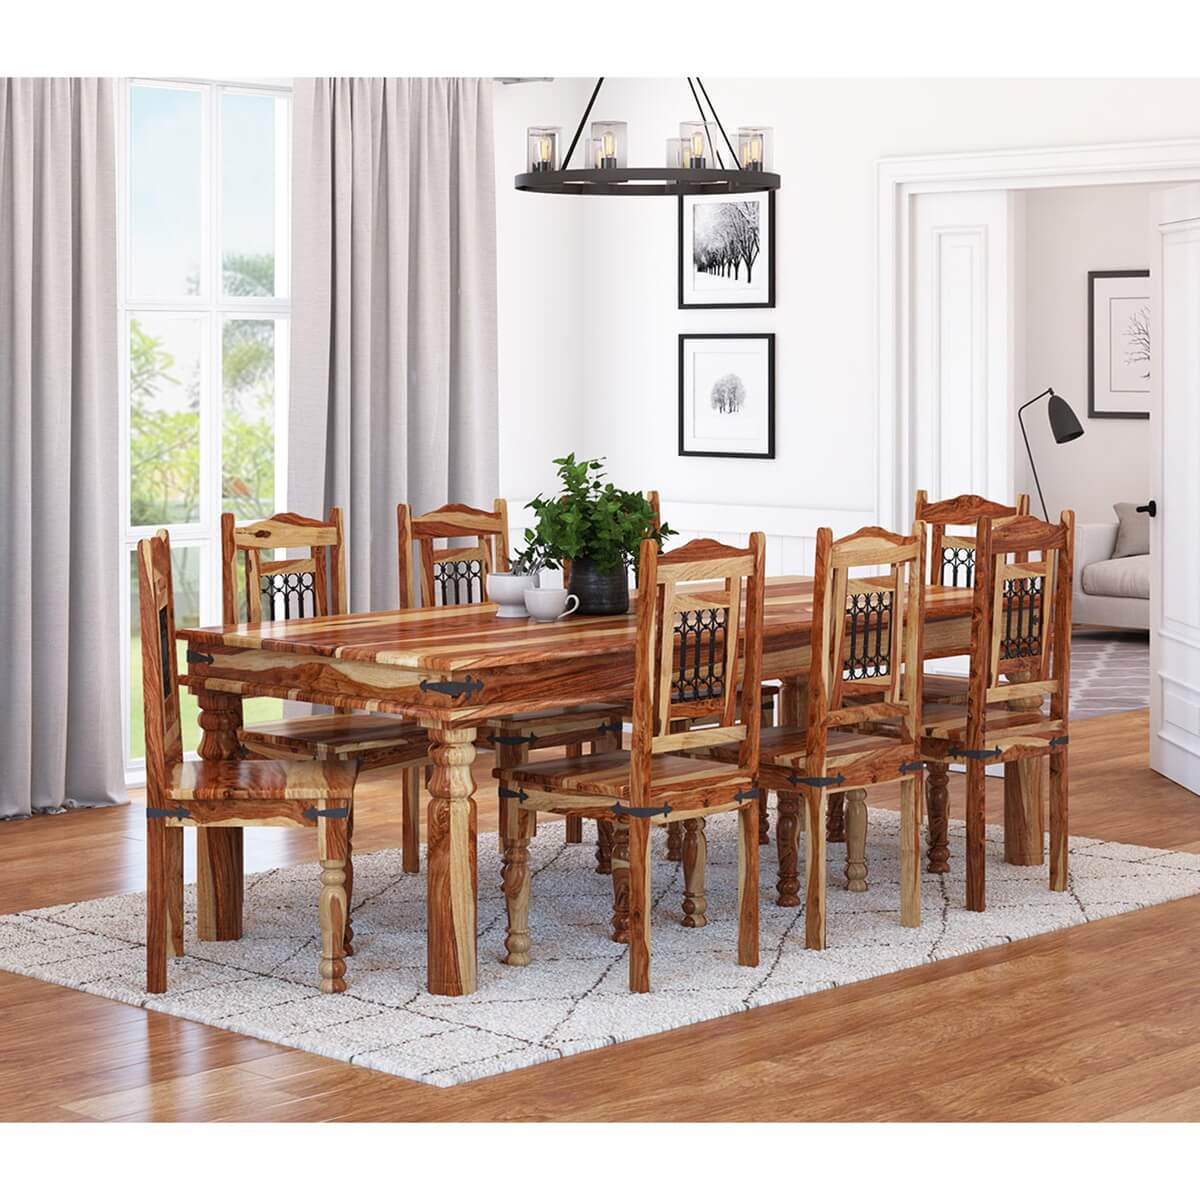 Dallas classic solid wood rustic dining room table and for Solid wood dining room table and chairs